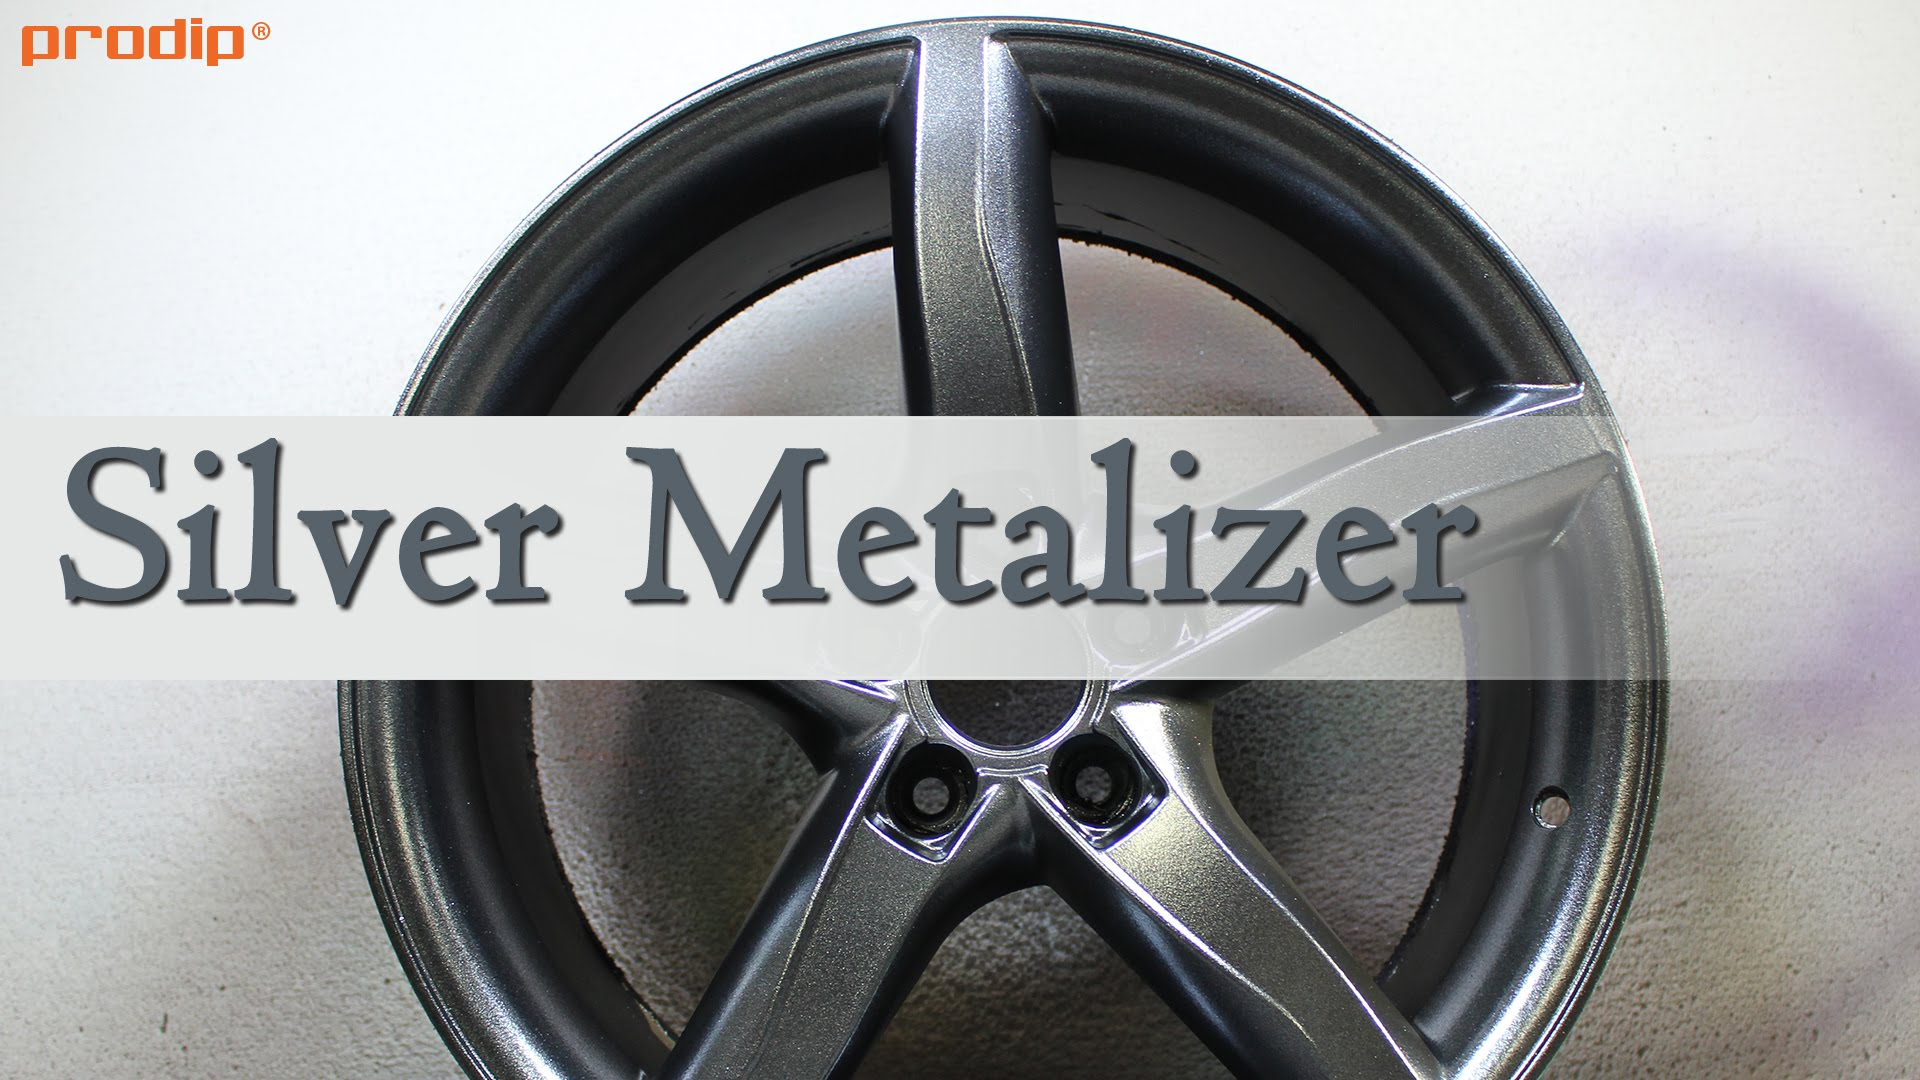 Silver Metalizer